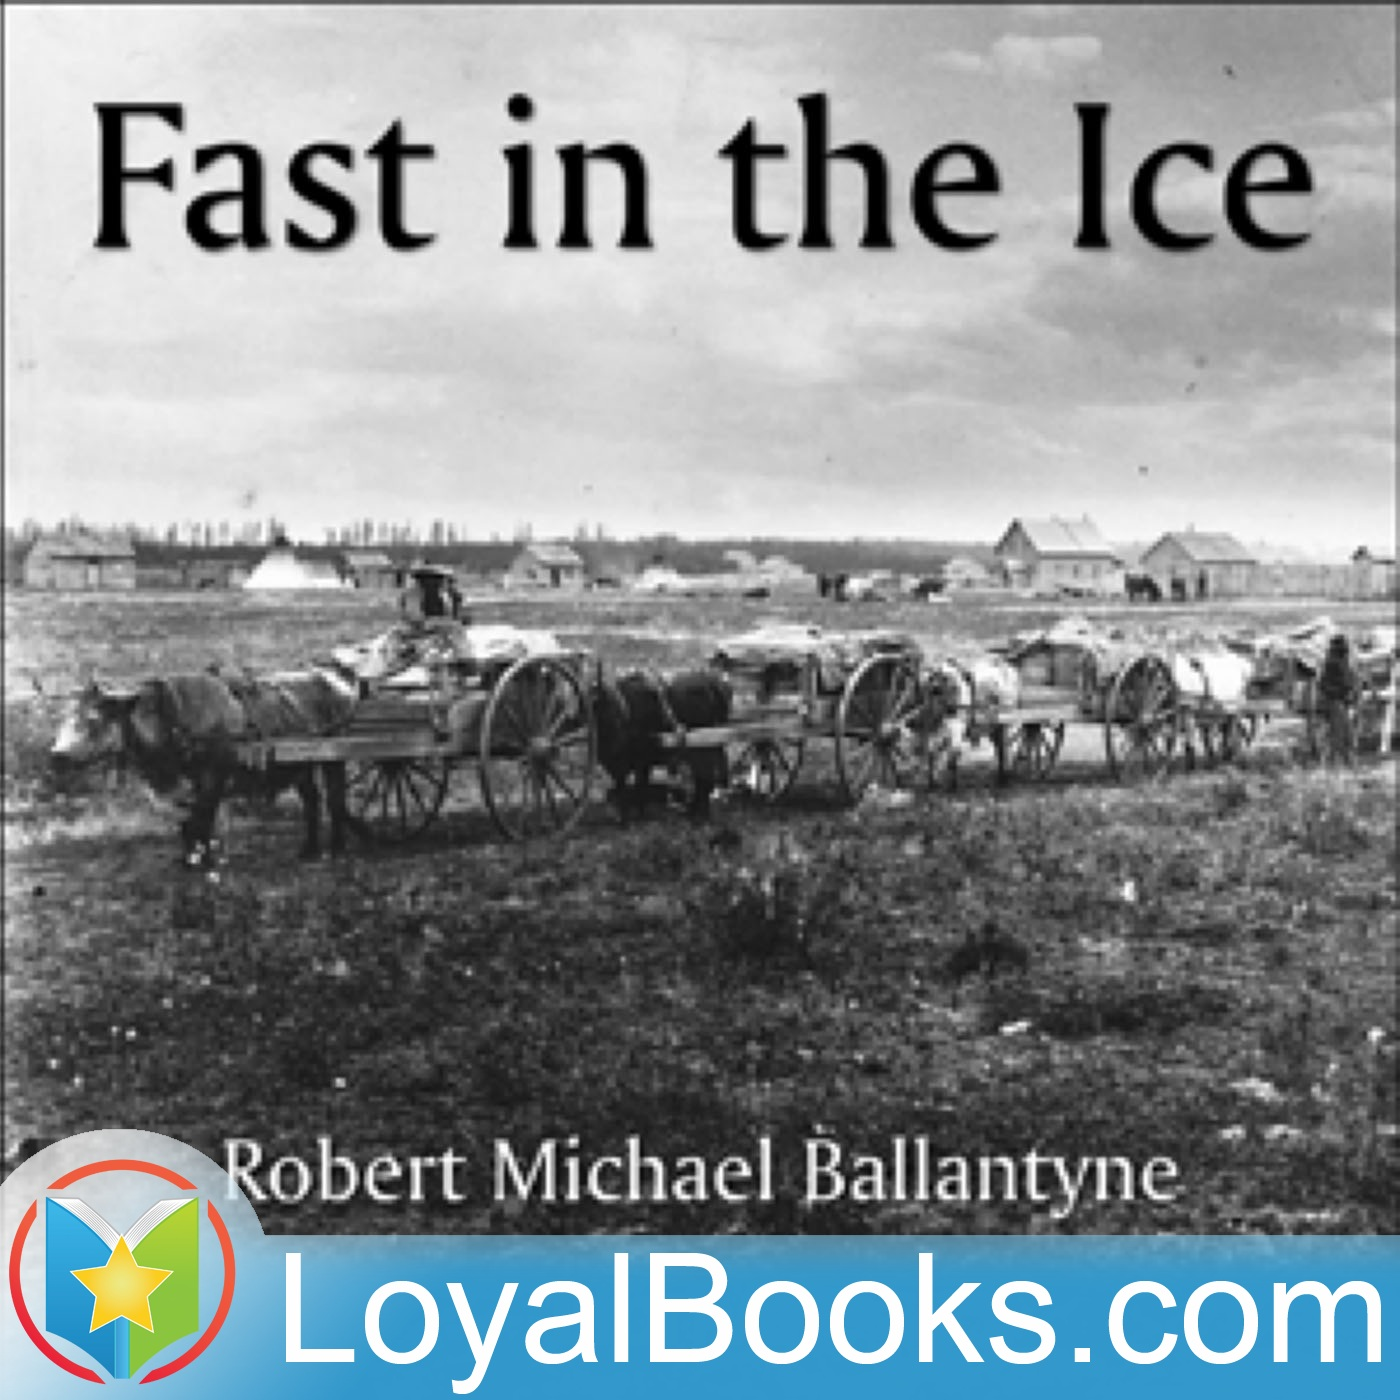 <![CDATA[Fast in the Ice by Robert Michael Ballantyne]]>